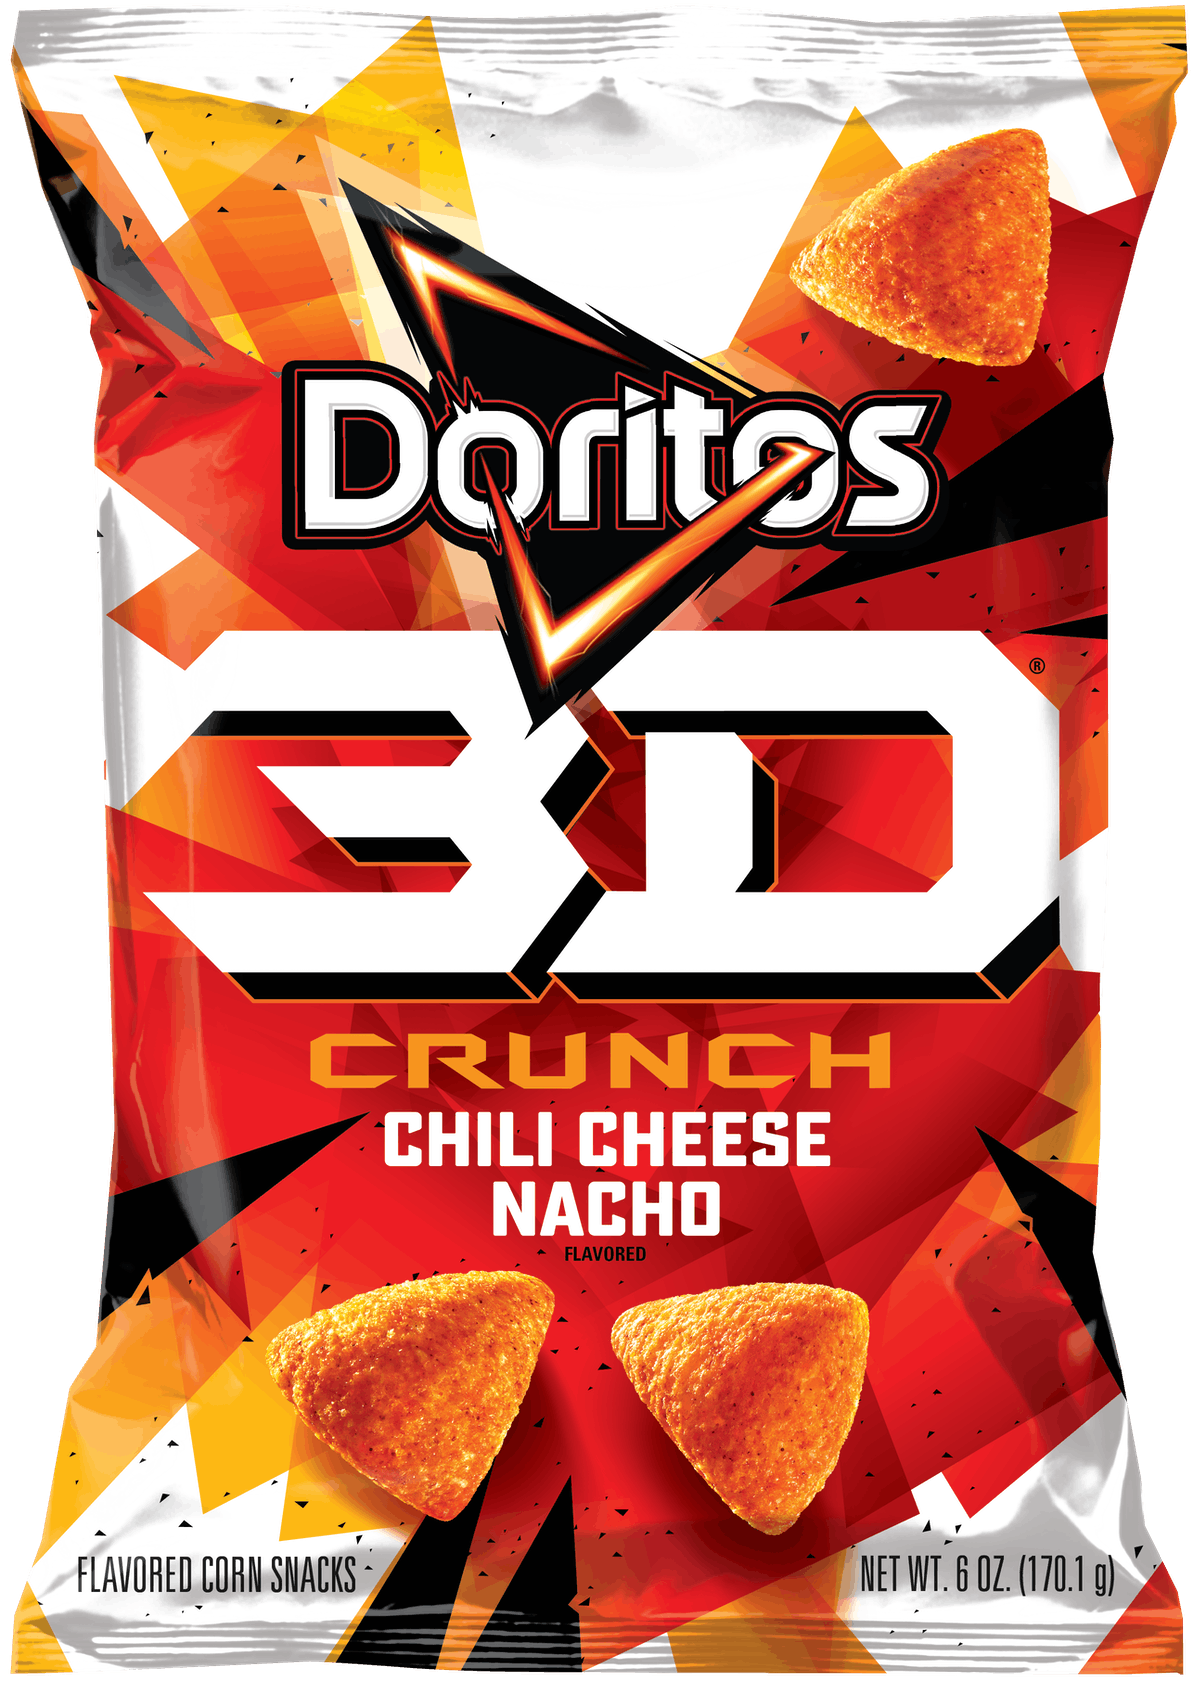 These new Doritos 3D Crunch flavors releasing in December are bold take on classics.